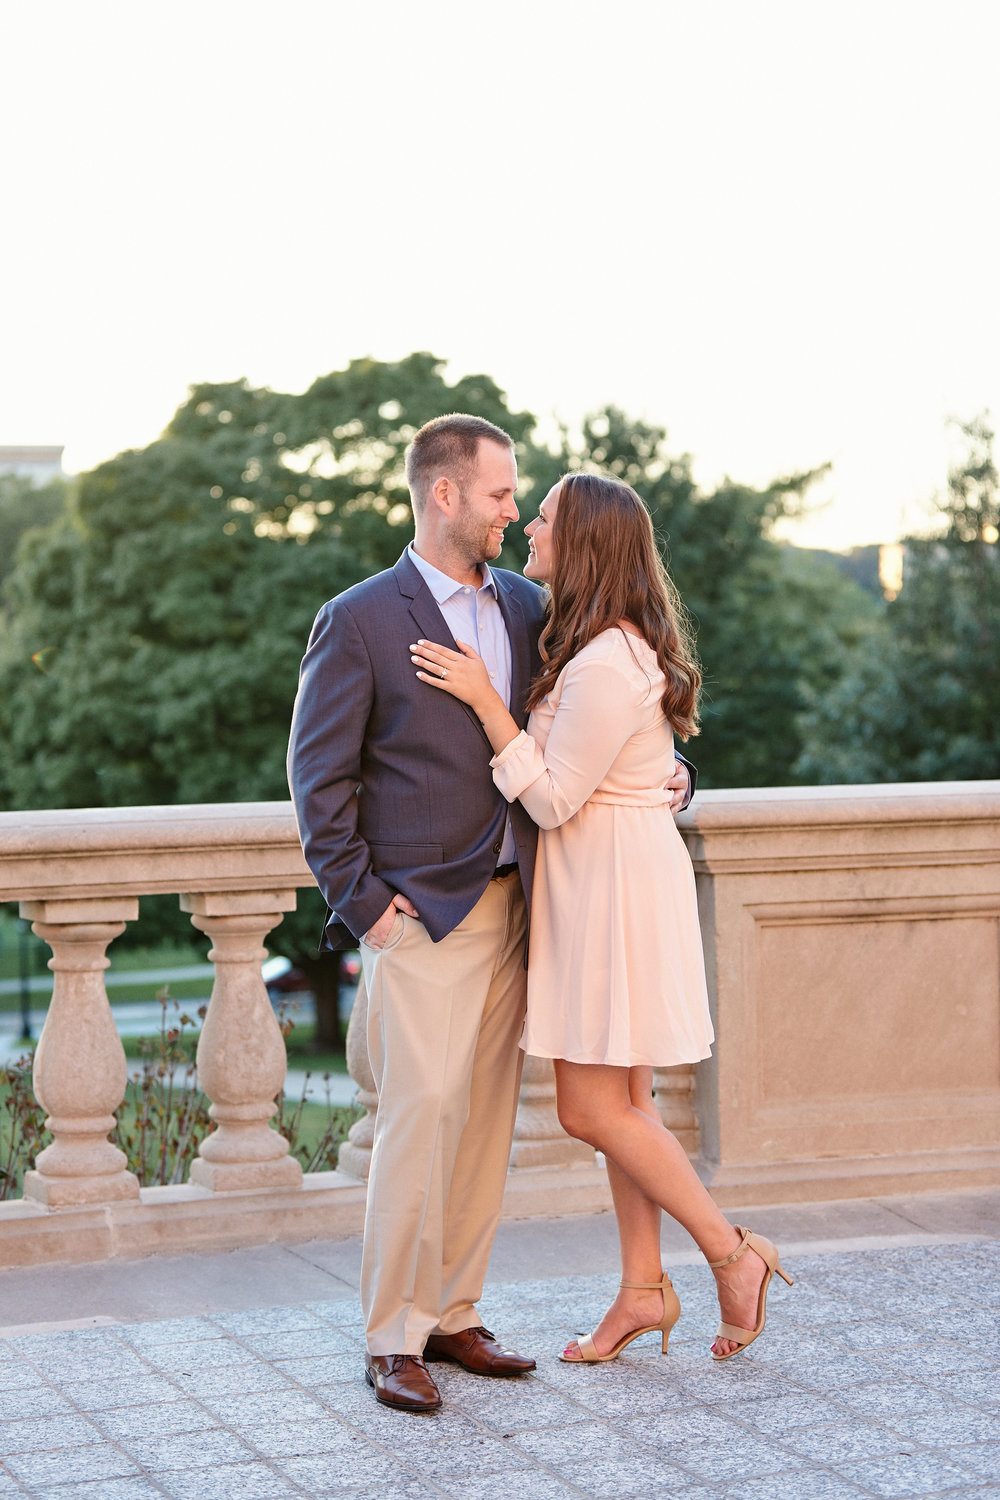 Iowa City Engagement Session by St Louis Wedding Photographers Oldani Photography 53.jpg